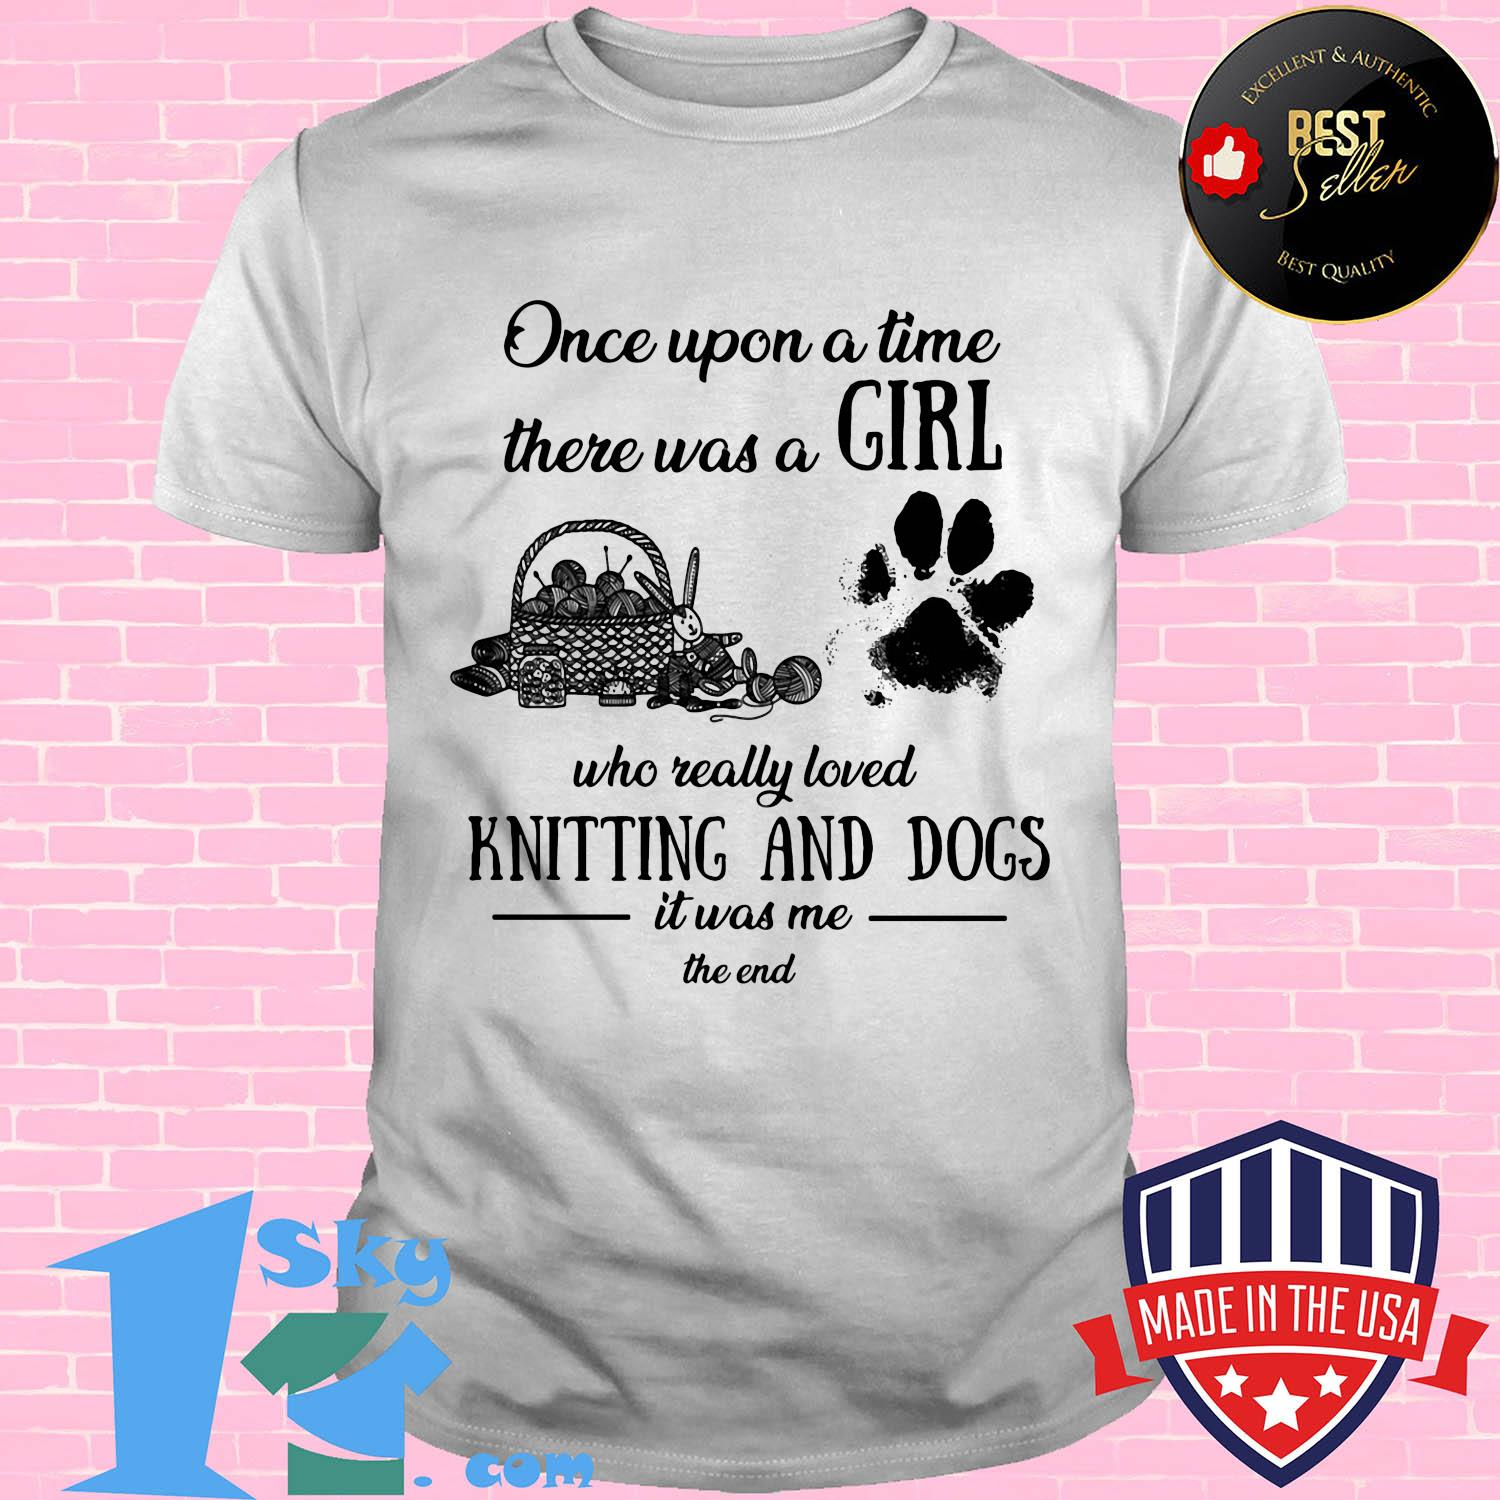 a694739d once upon a time there was a girl knitting and dogs shirt unisex - Shop trending - We offer all trend shirts - 1SkyTee